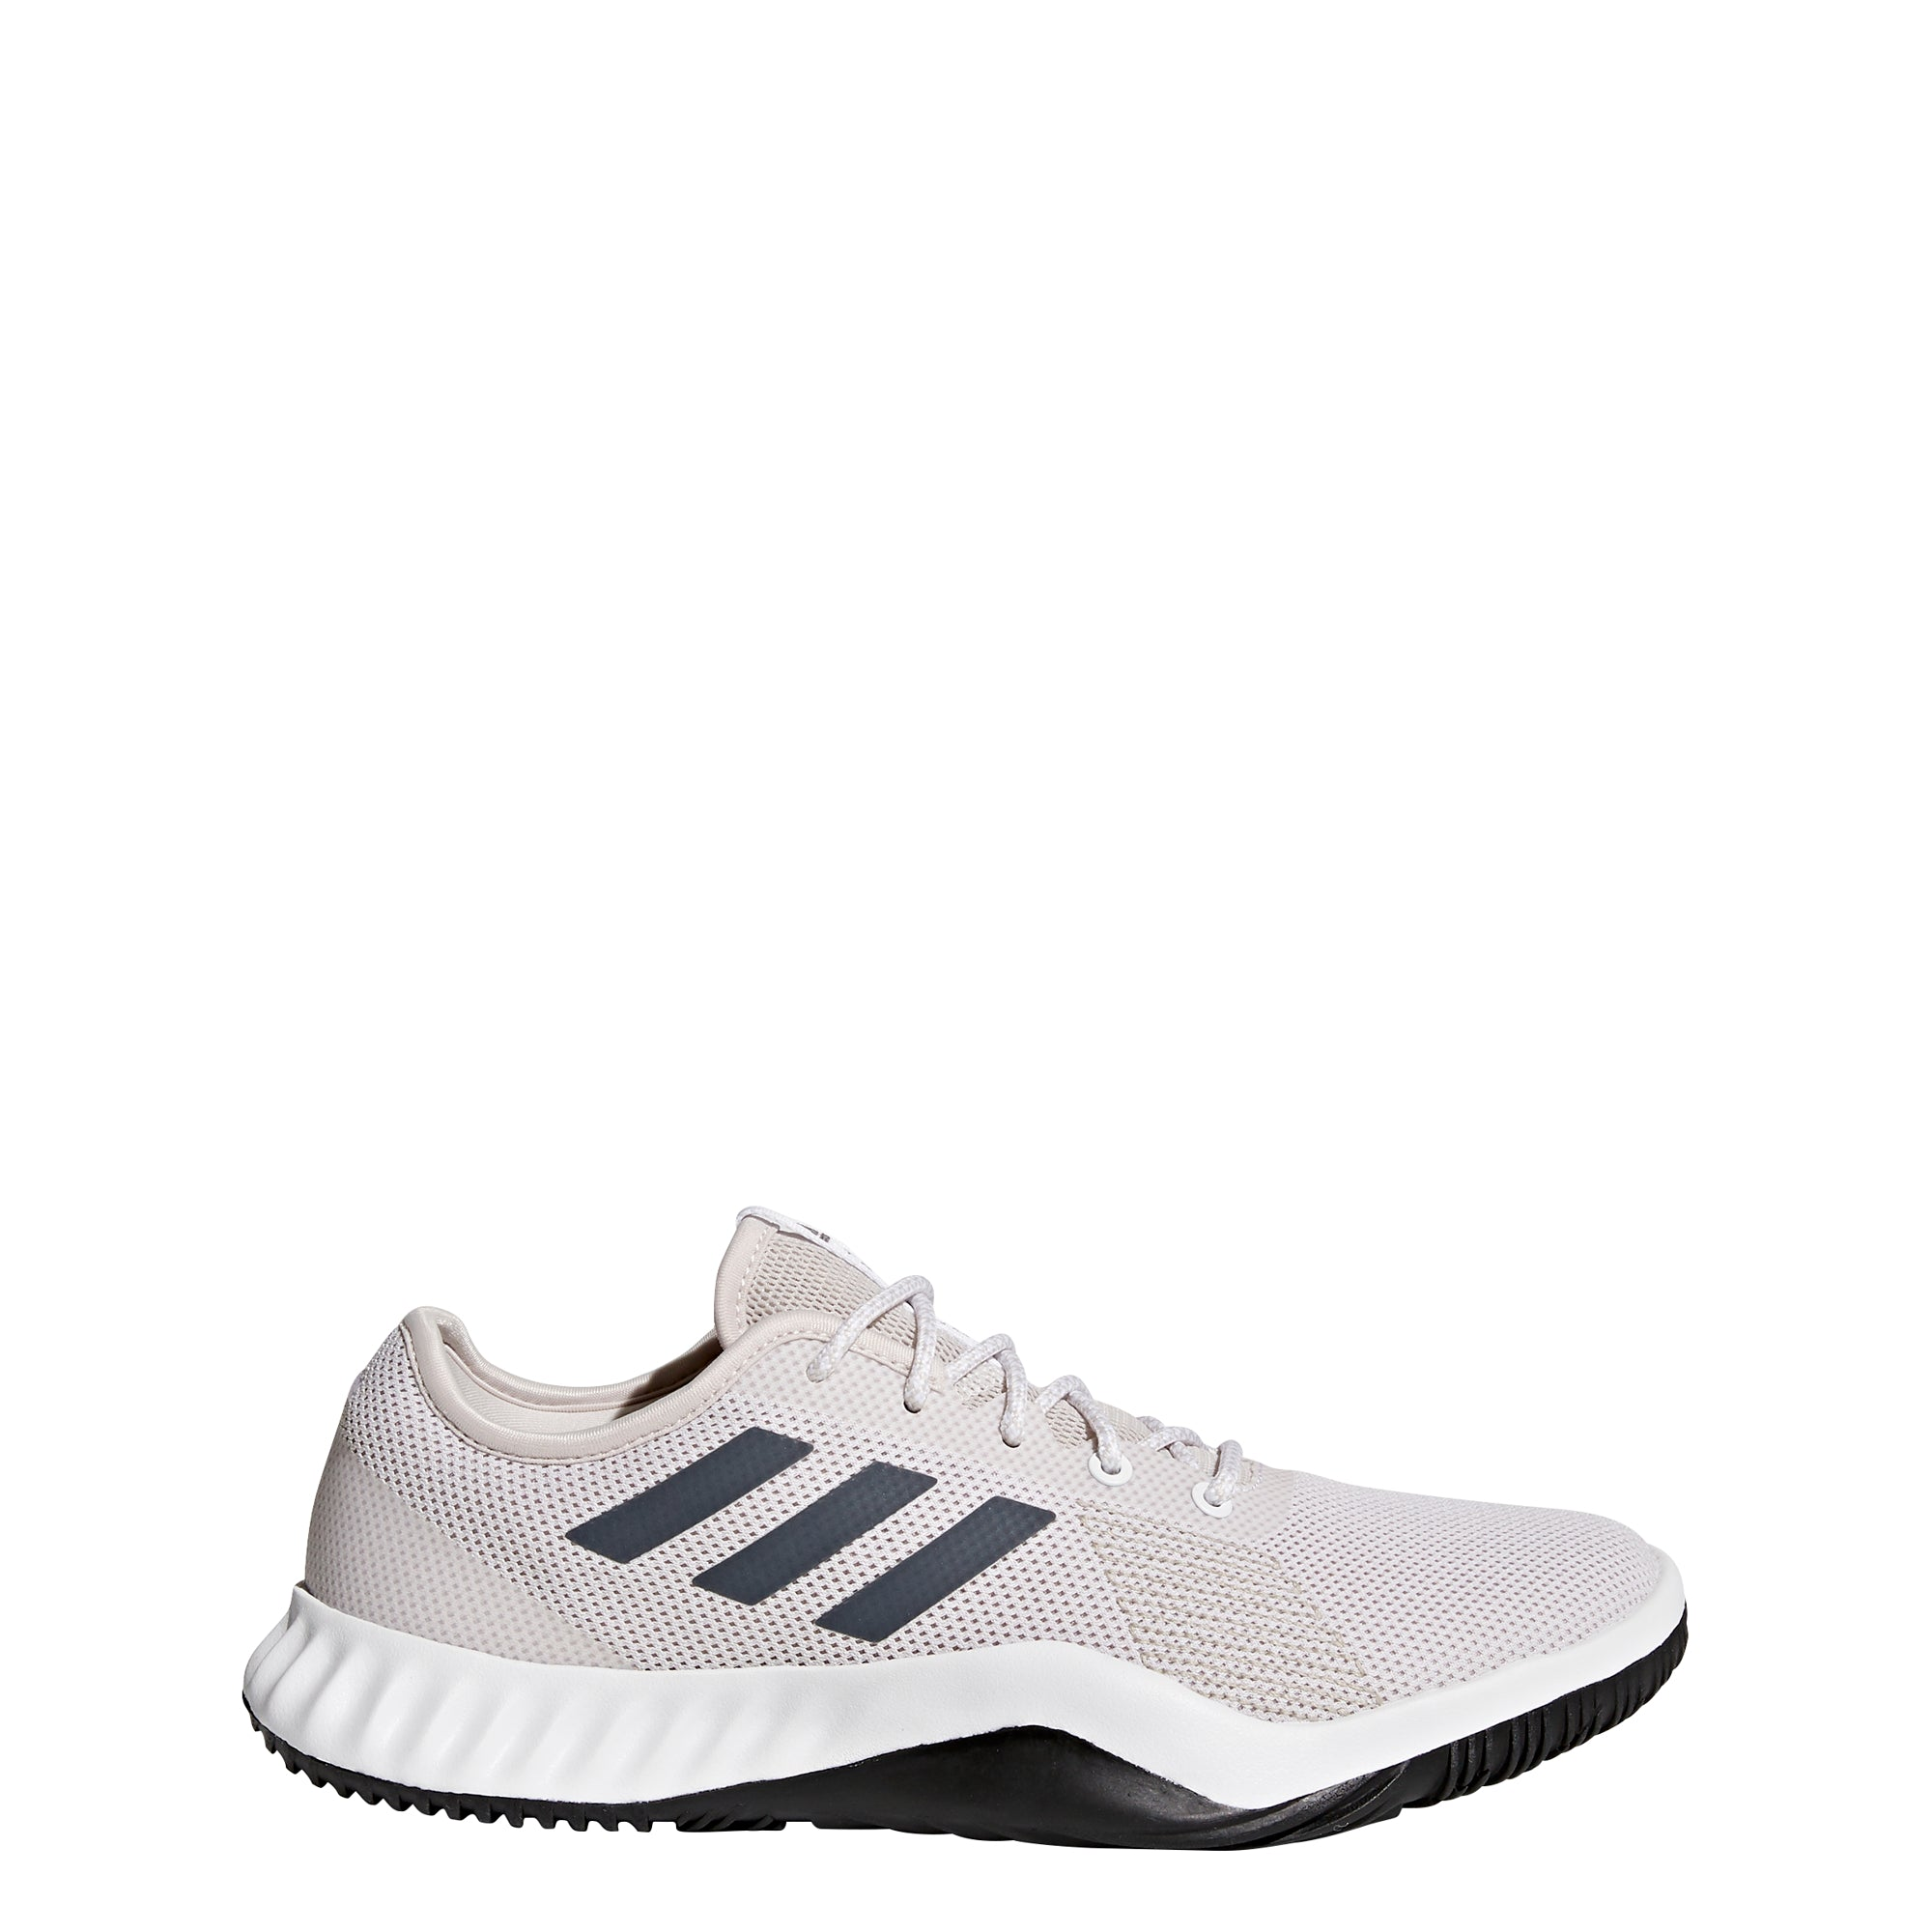 cheap for discount 9a6b2 98b4f Buy adidas Men CrazyTrain LT M Training Shoes, White Grey Online in  Singapore   Royal Sporting House